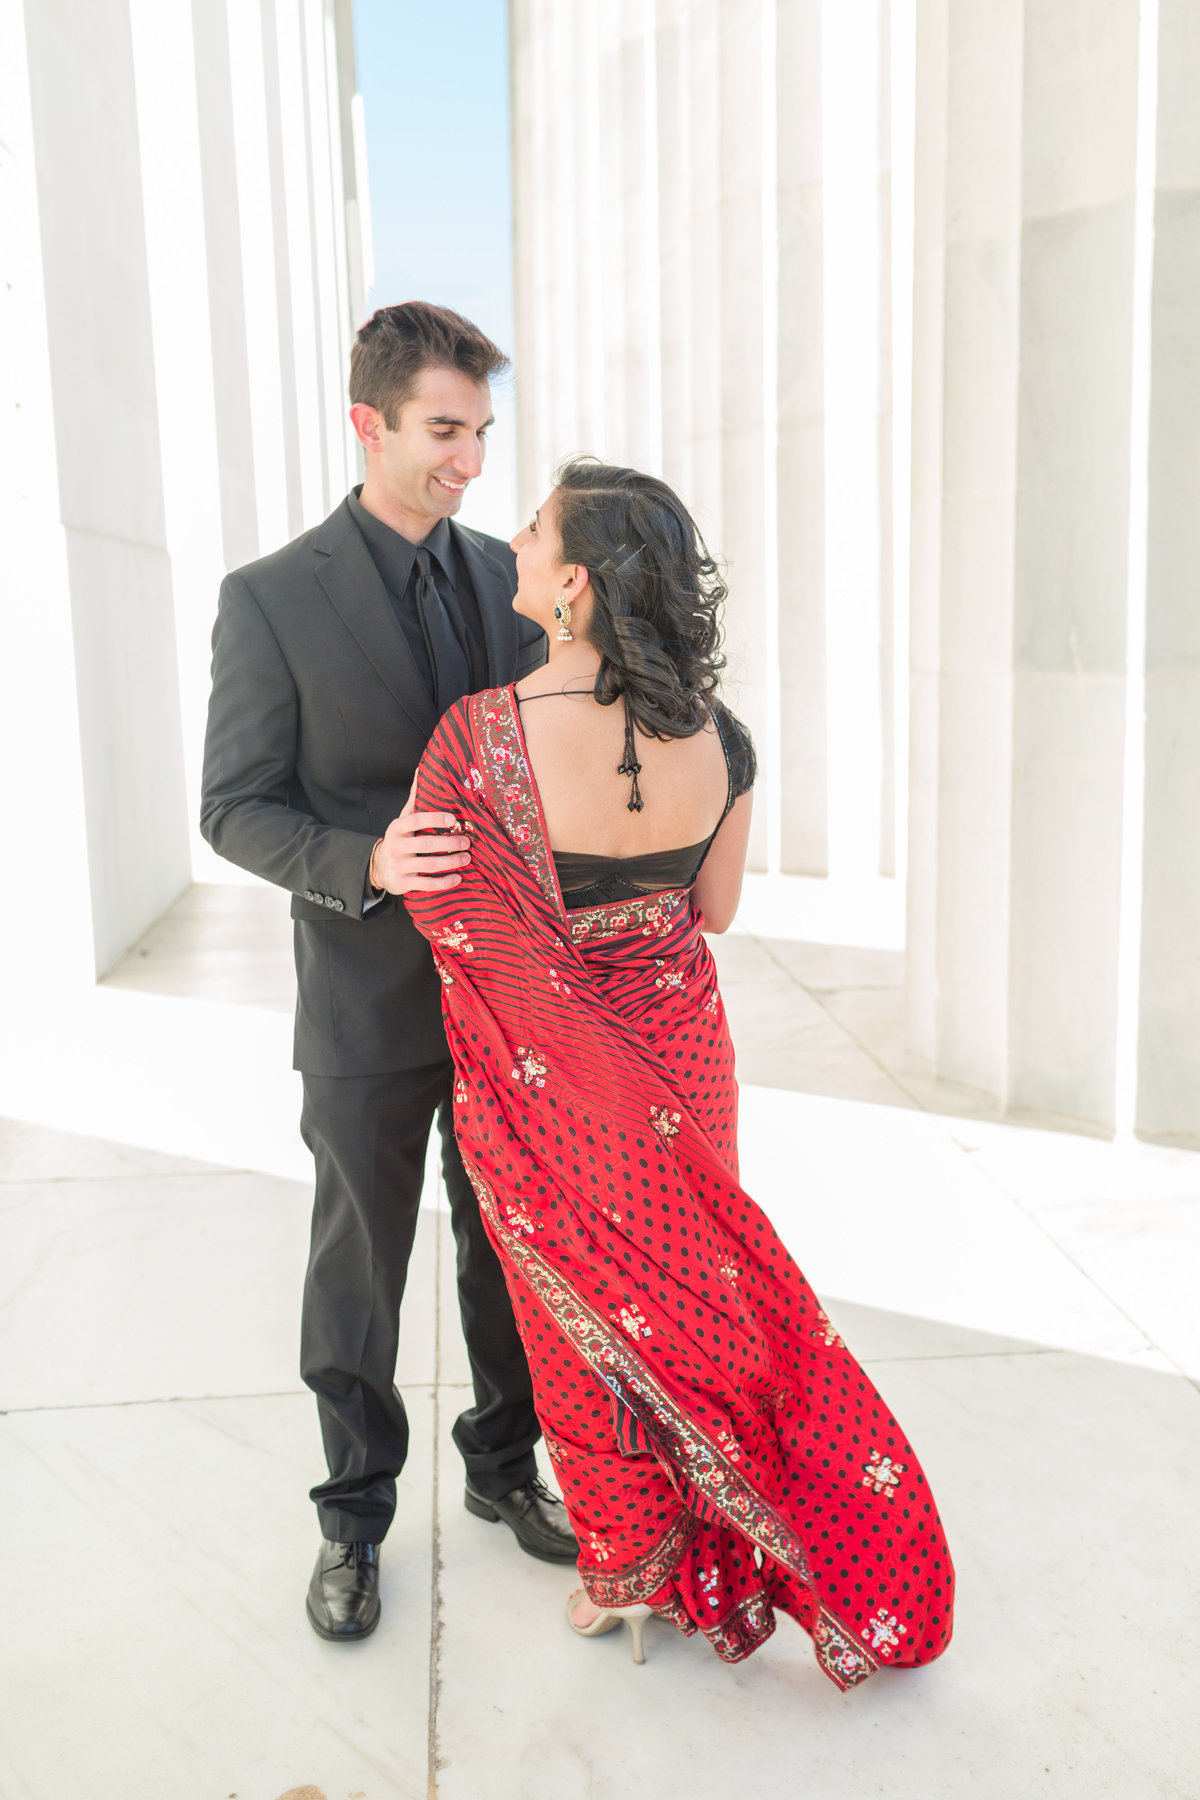 Akhil and Reena-Nilo-Burke-Photography-177